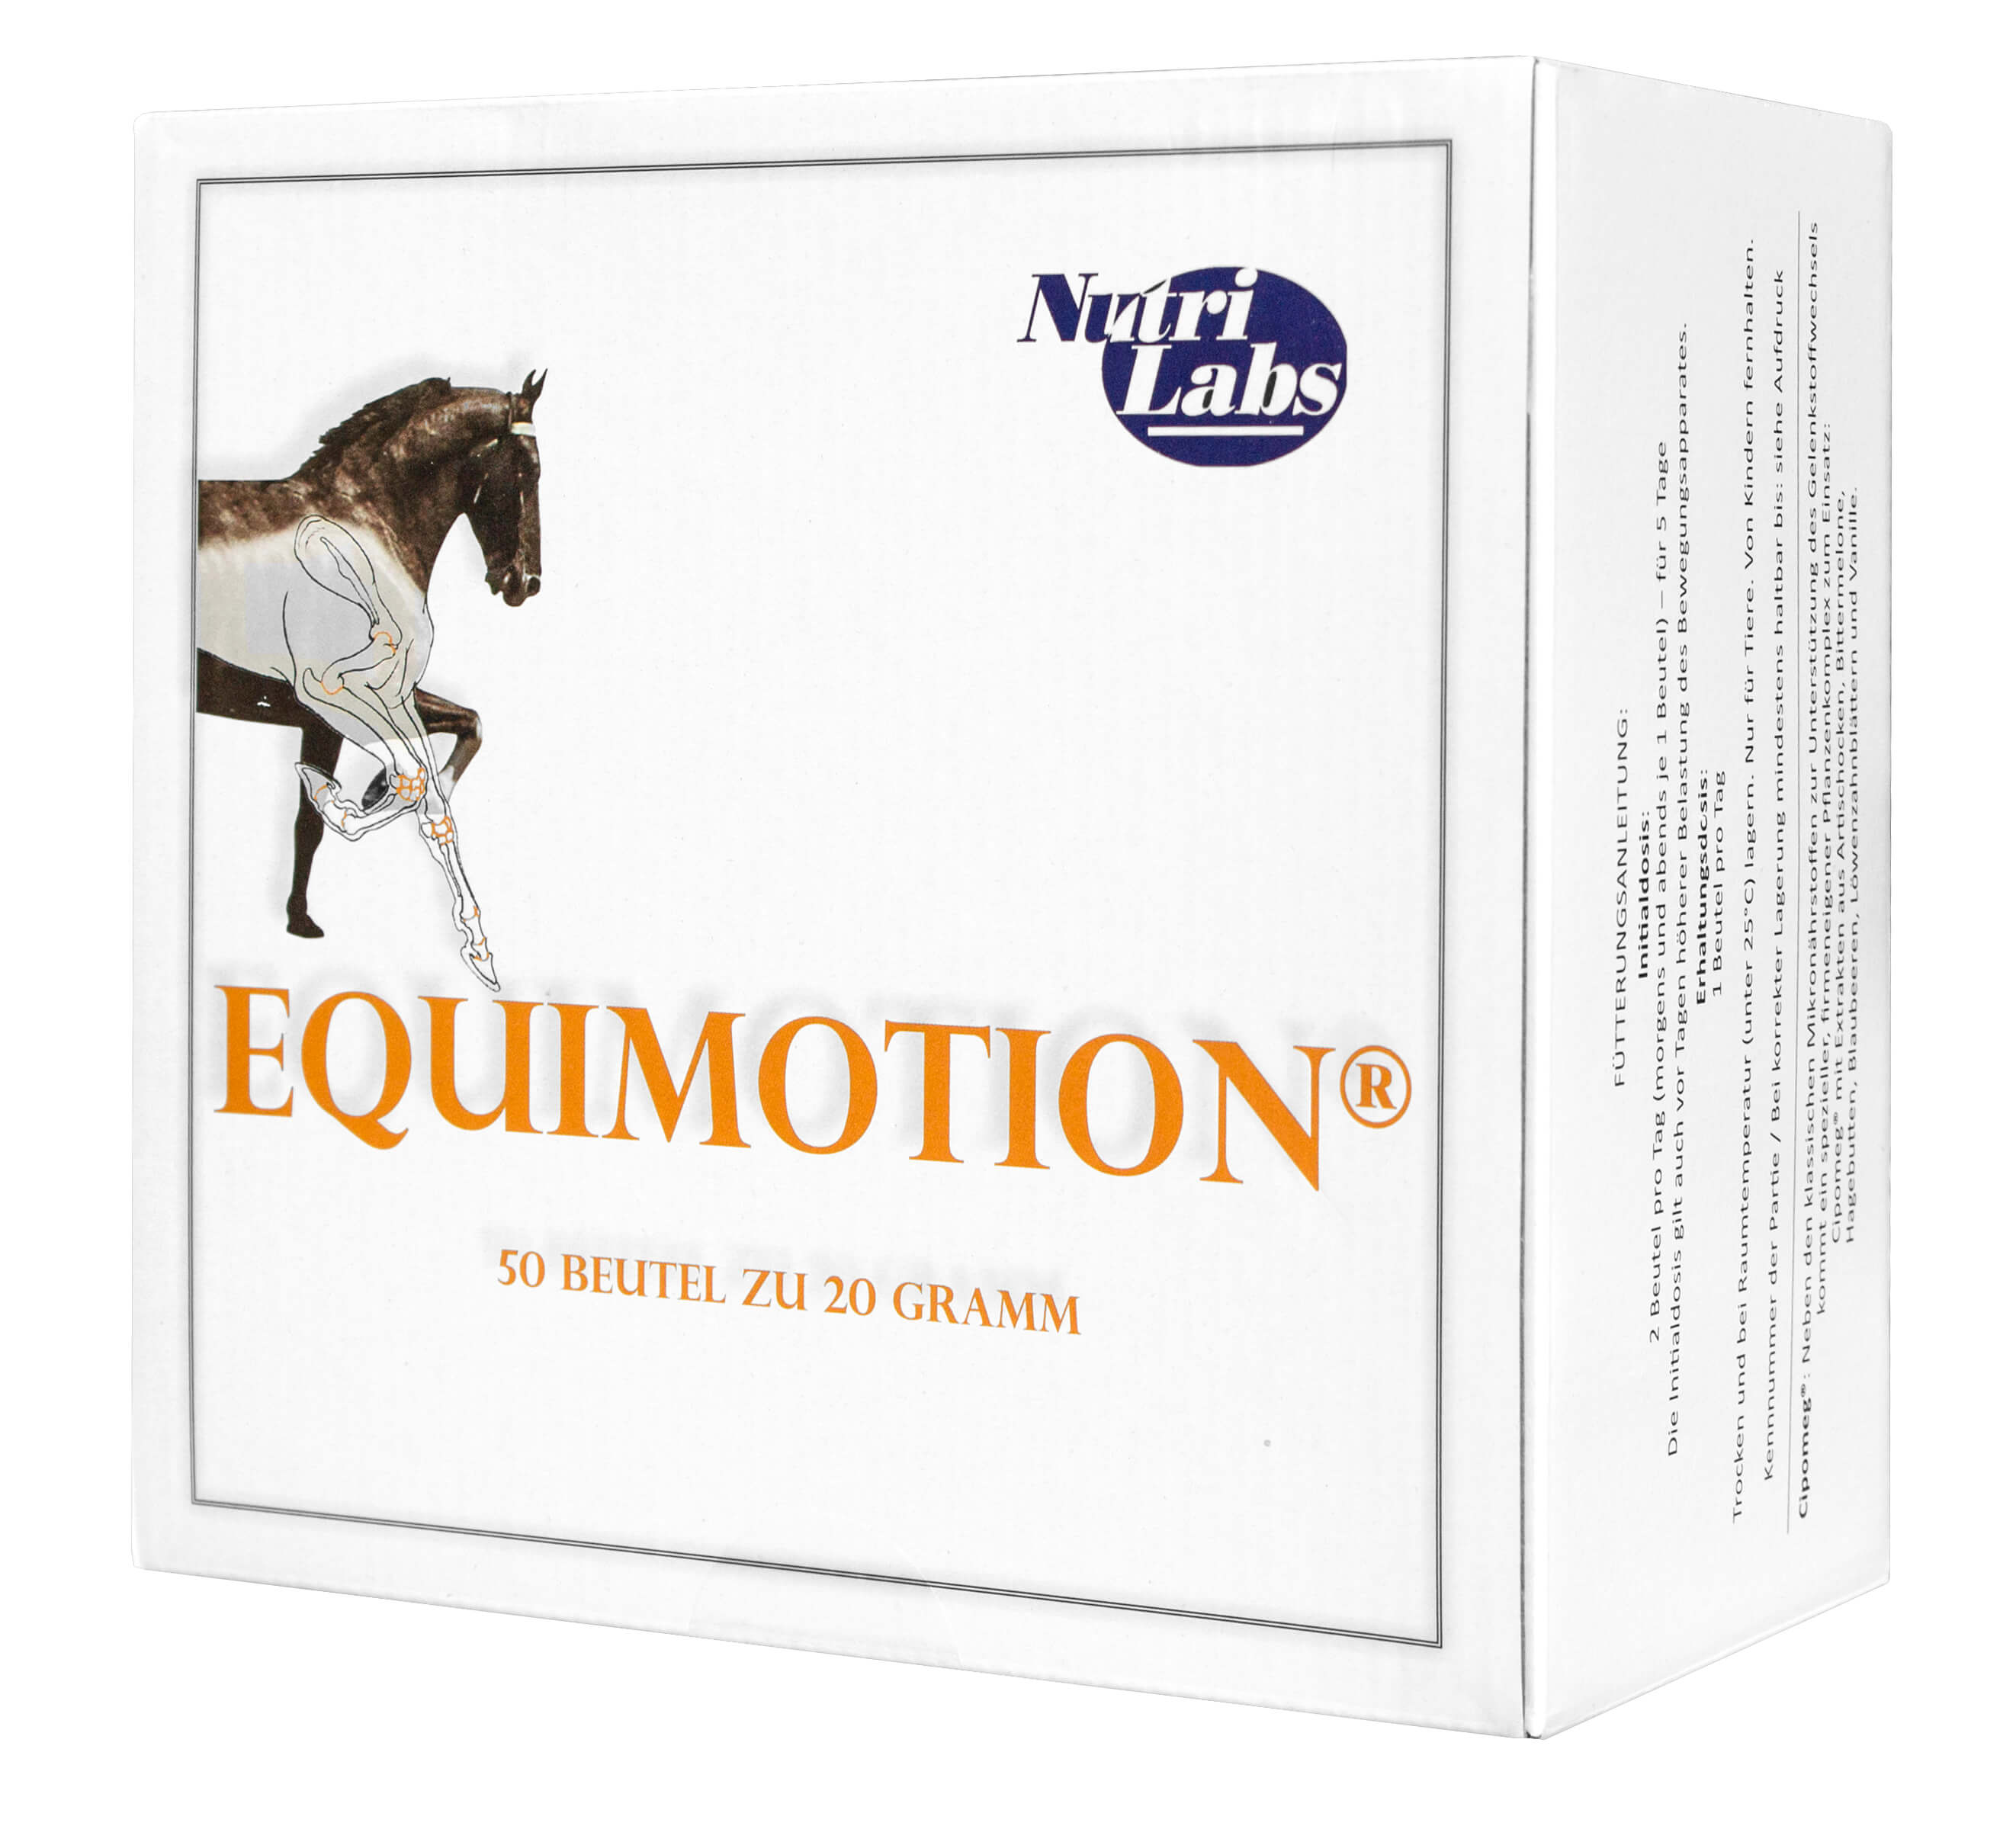 Nutrilabs Equimotion Image